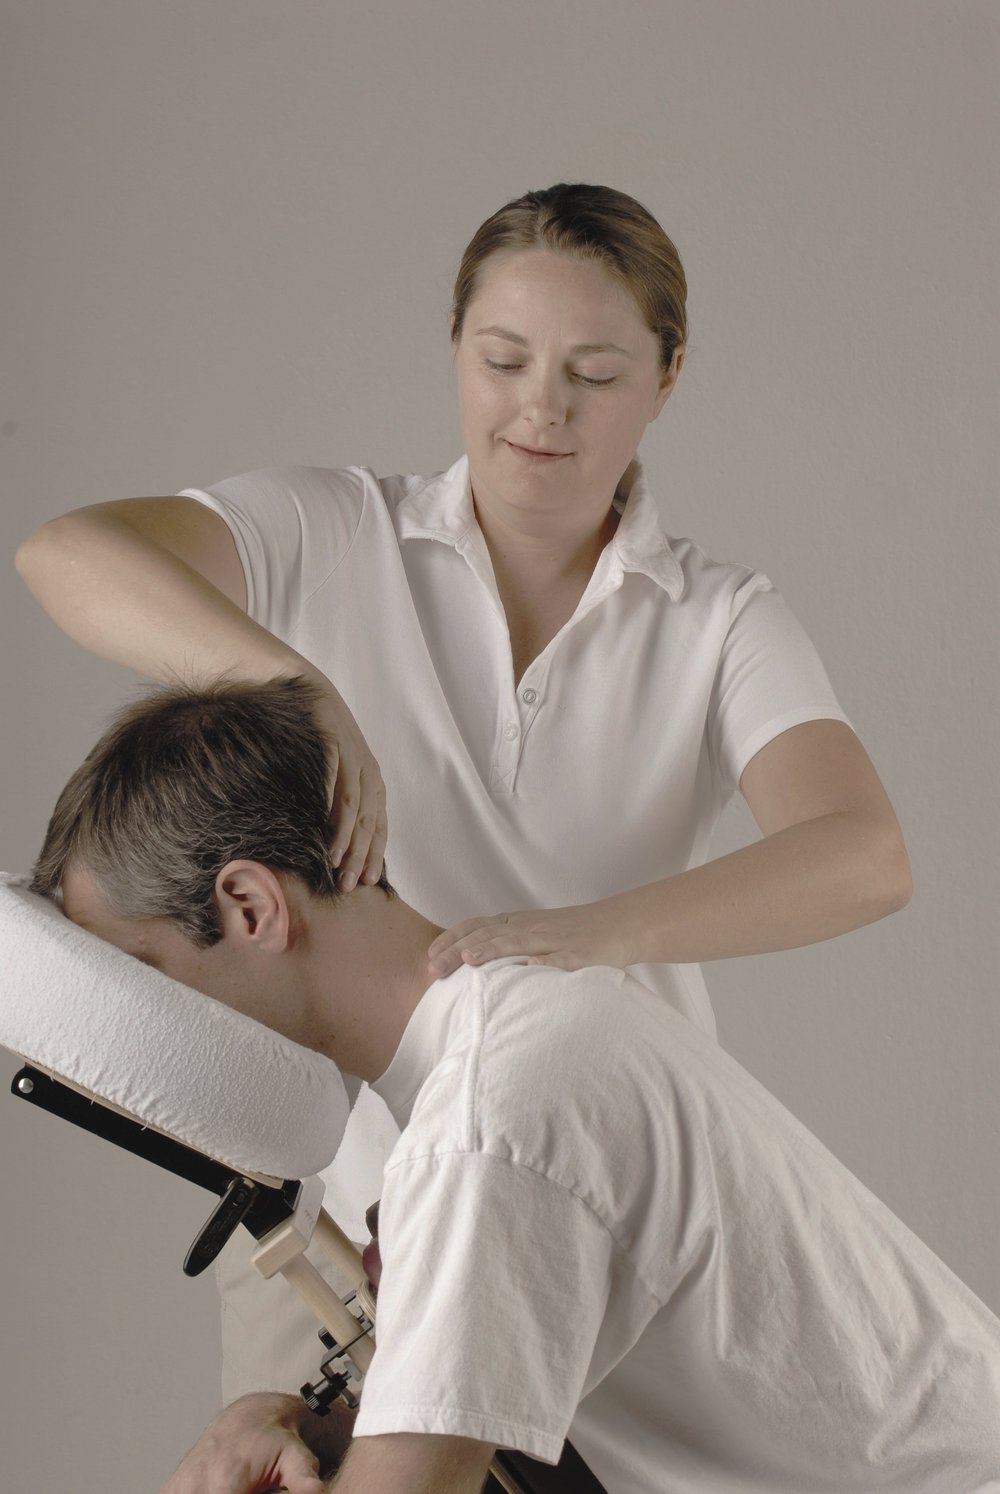 Corporate Wellness Program - reward your employees with chair massages